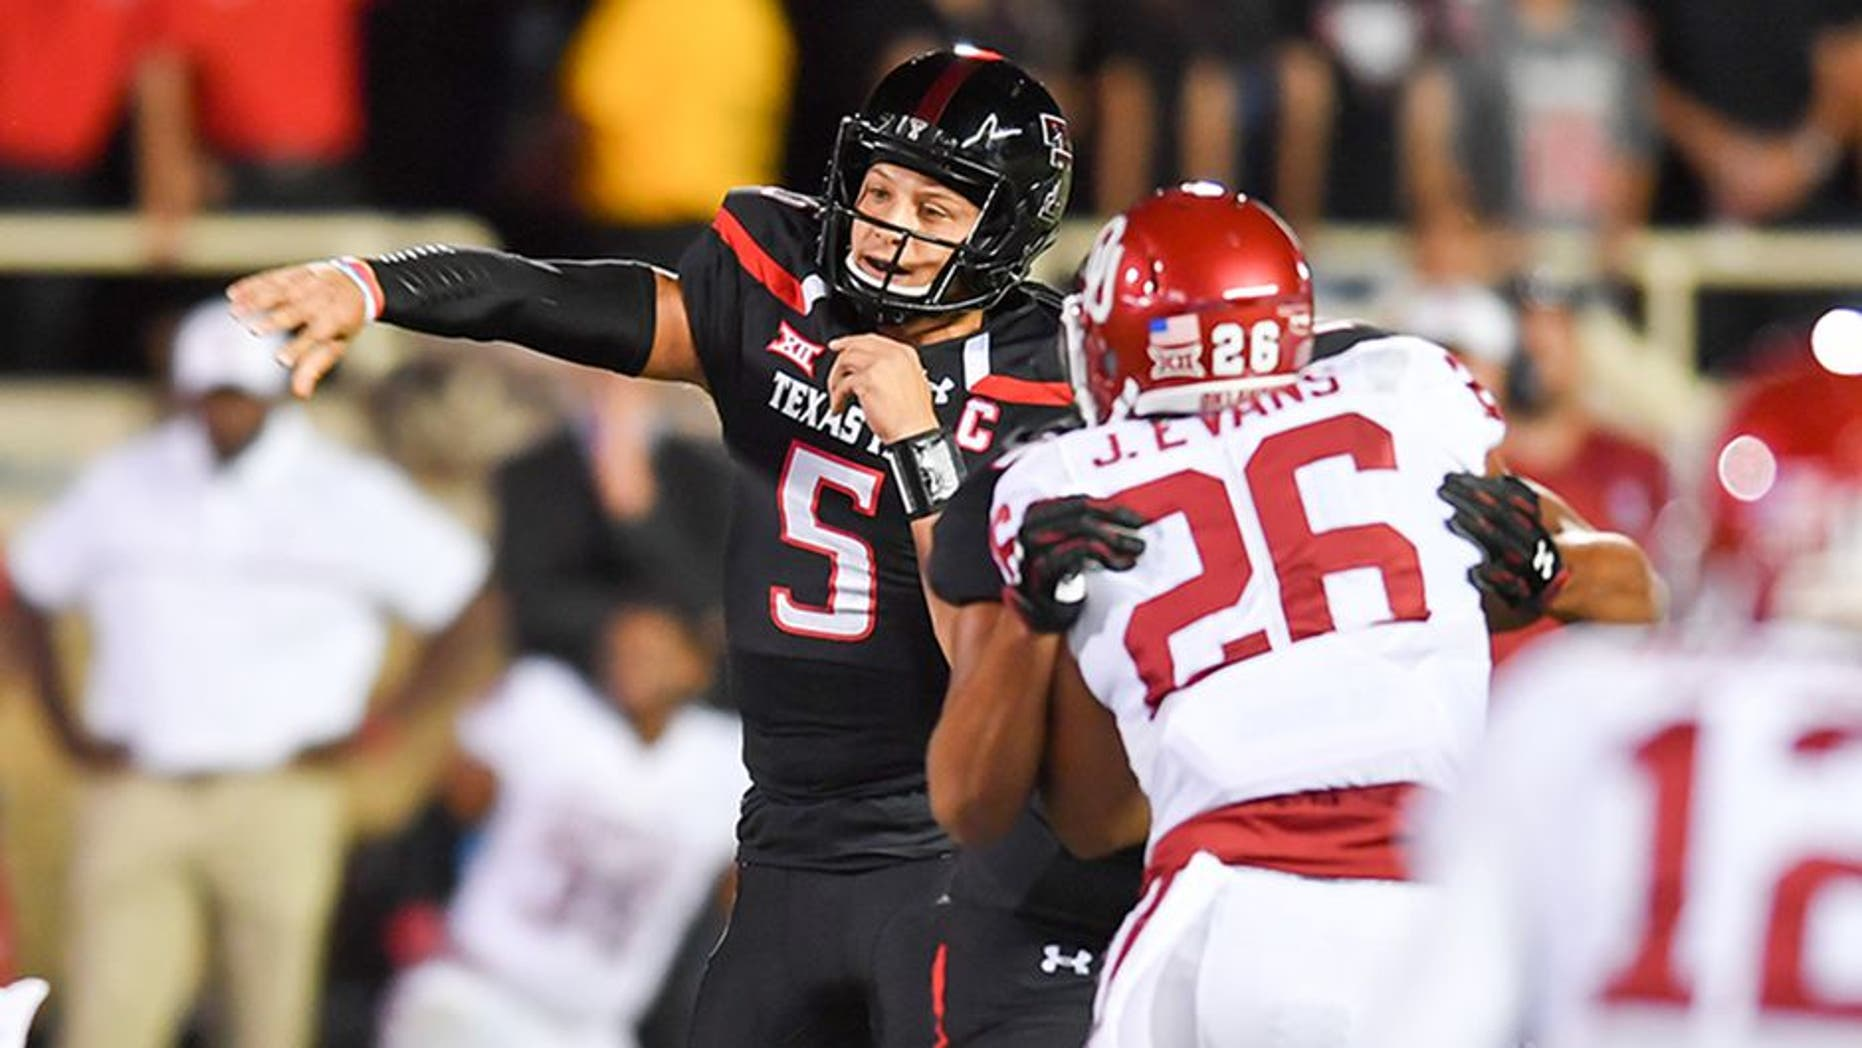 LUBBOCK, TX - OCTOBER 22: Patrick Mahomes II #5 of the Texas Tech Red Raiders [asses the ball during the first half of the game against the Oklahoma Sooners on October 22, 2016 at AT&T Jones Stadium in Lubbock, Texas. (Photo by John Weast/Getty Images)